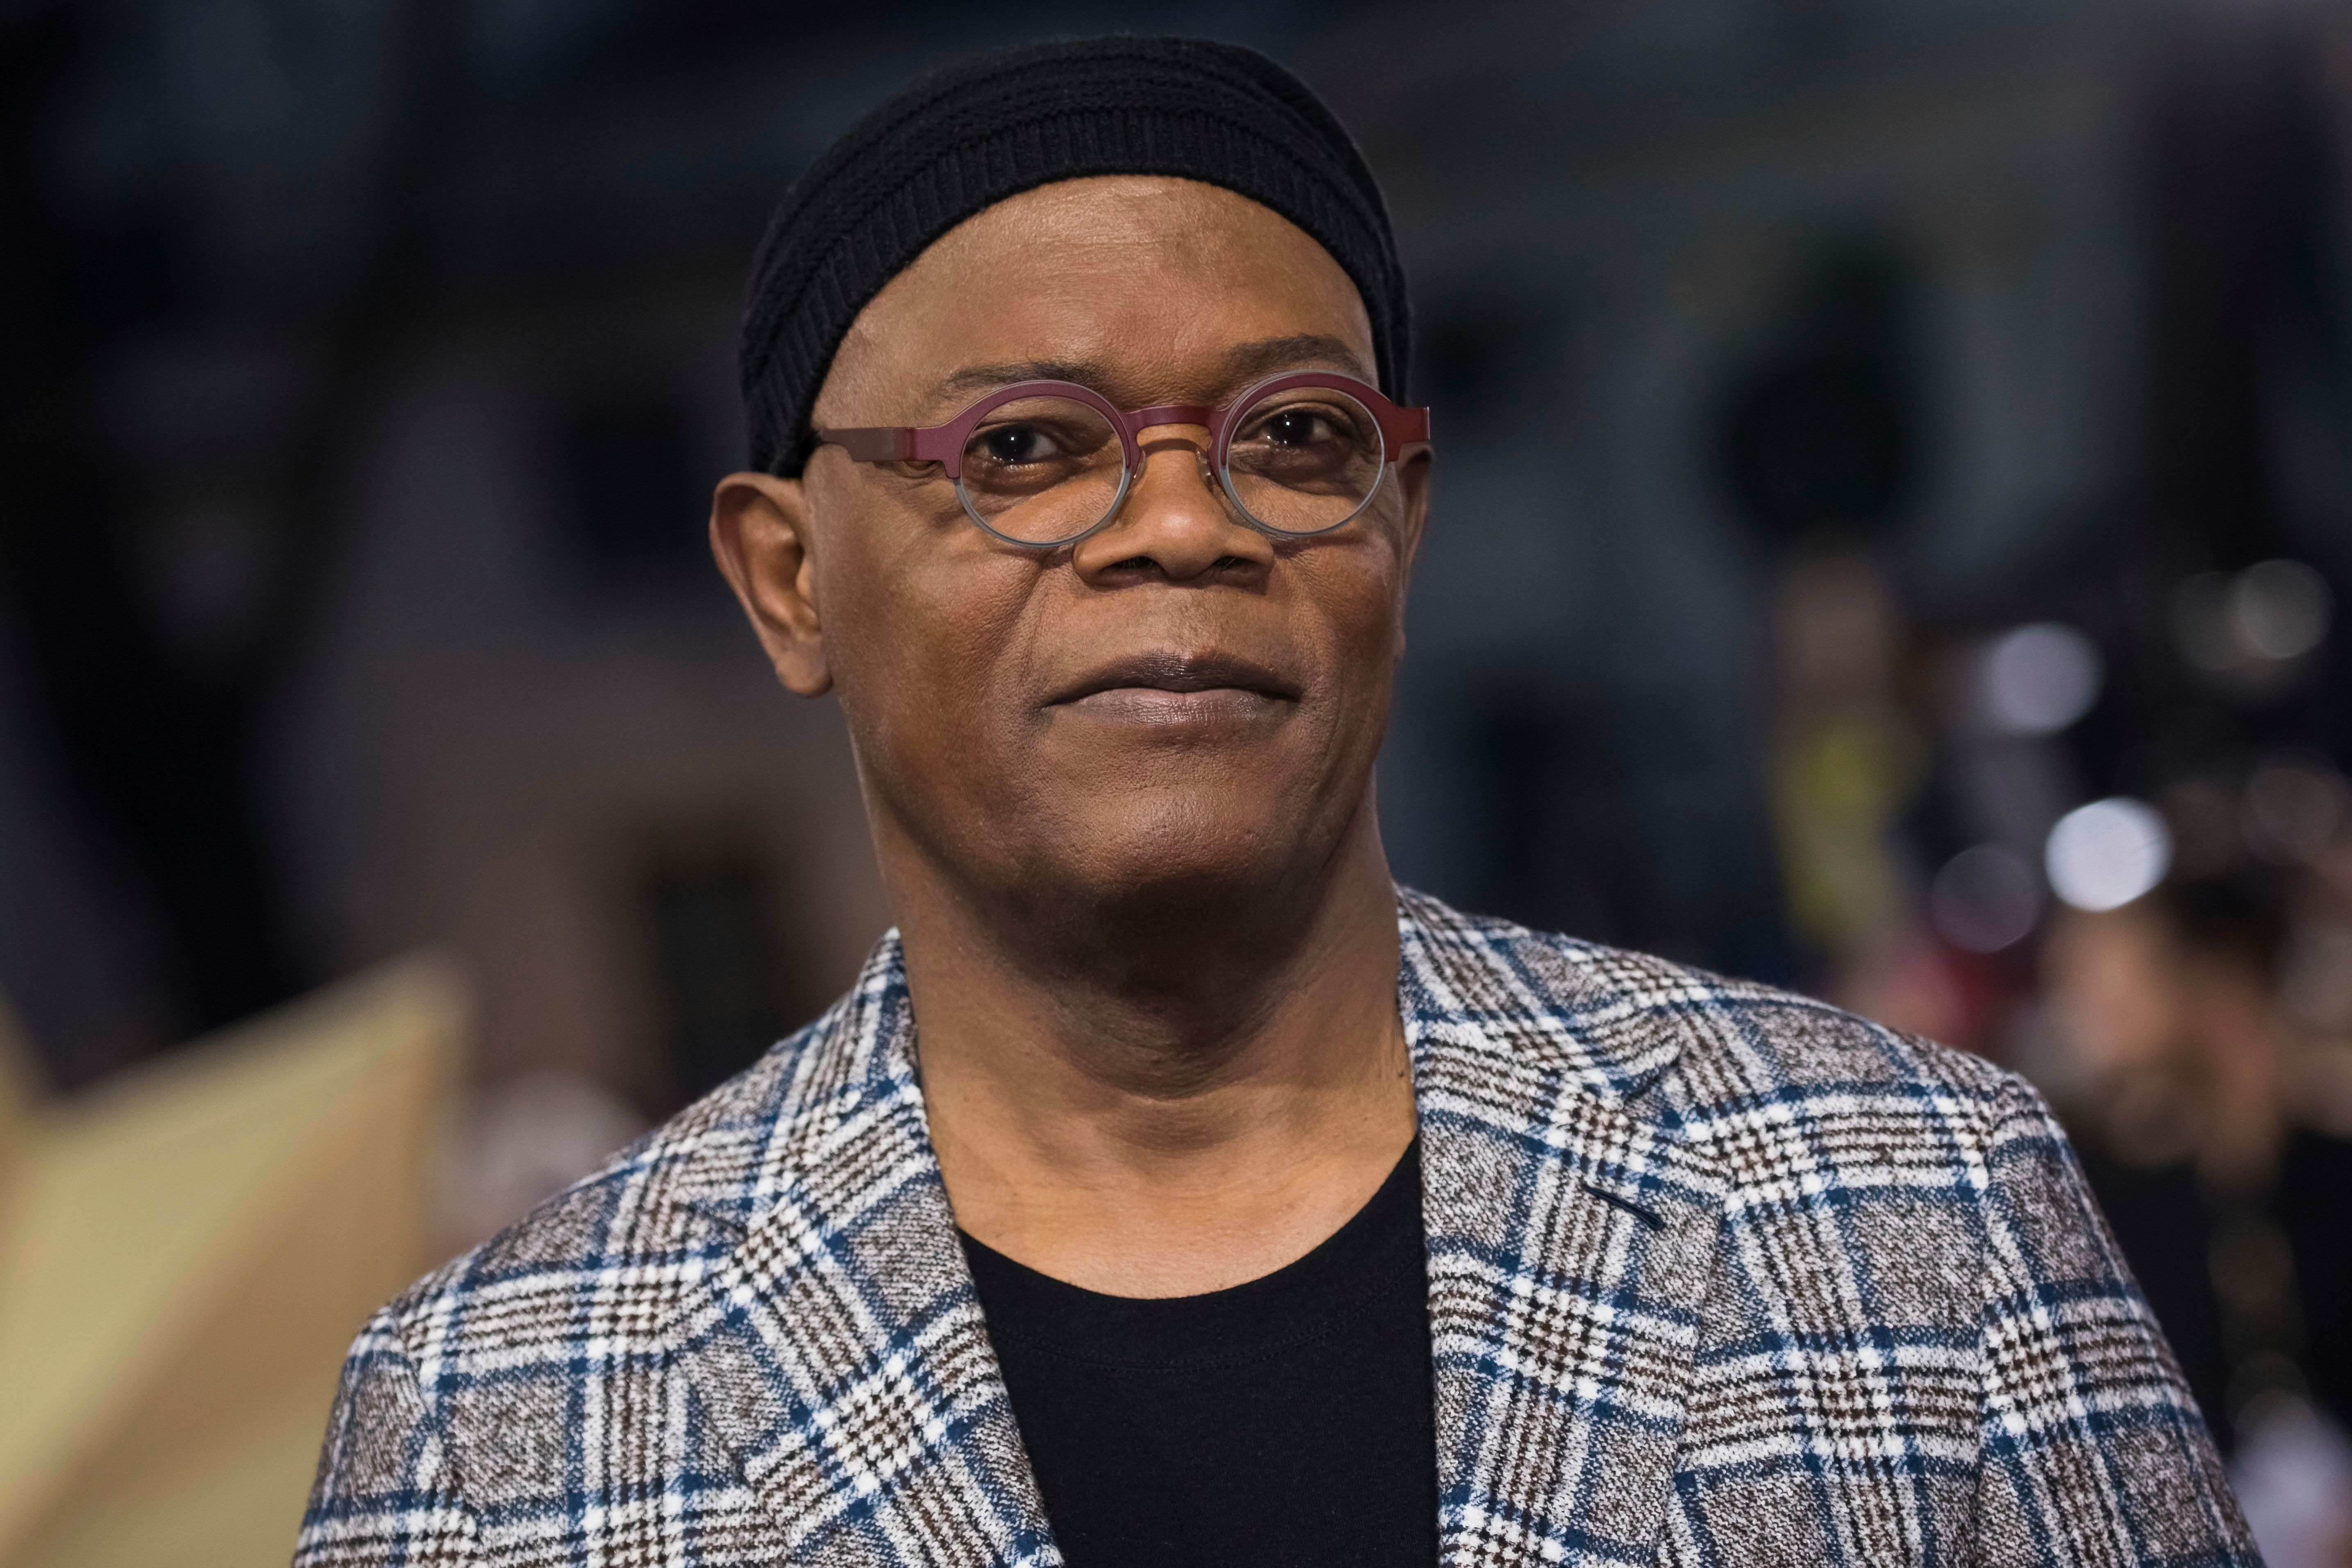 Samuel L. Jackson Demands Answers for 'Spider-Man' Poster Gaffe: 'What the F**k Is Going On Here?'